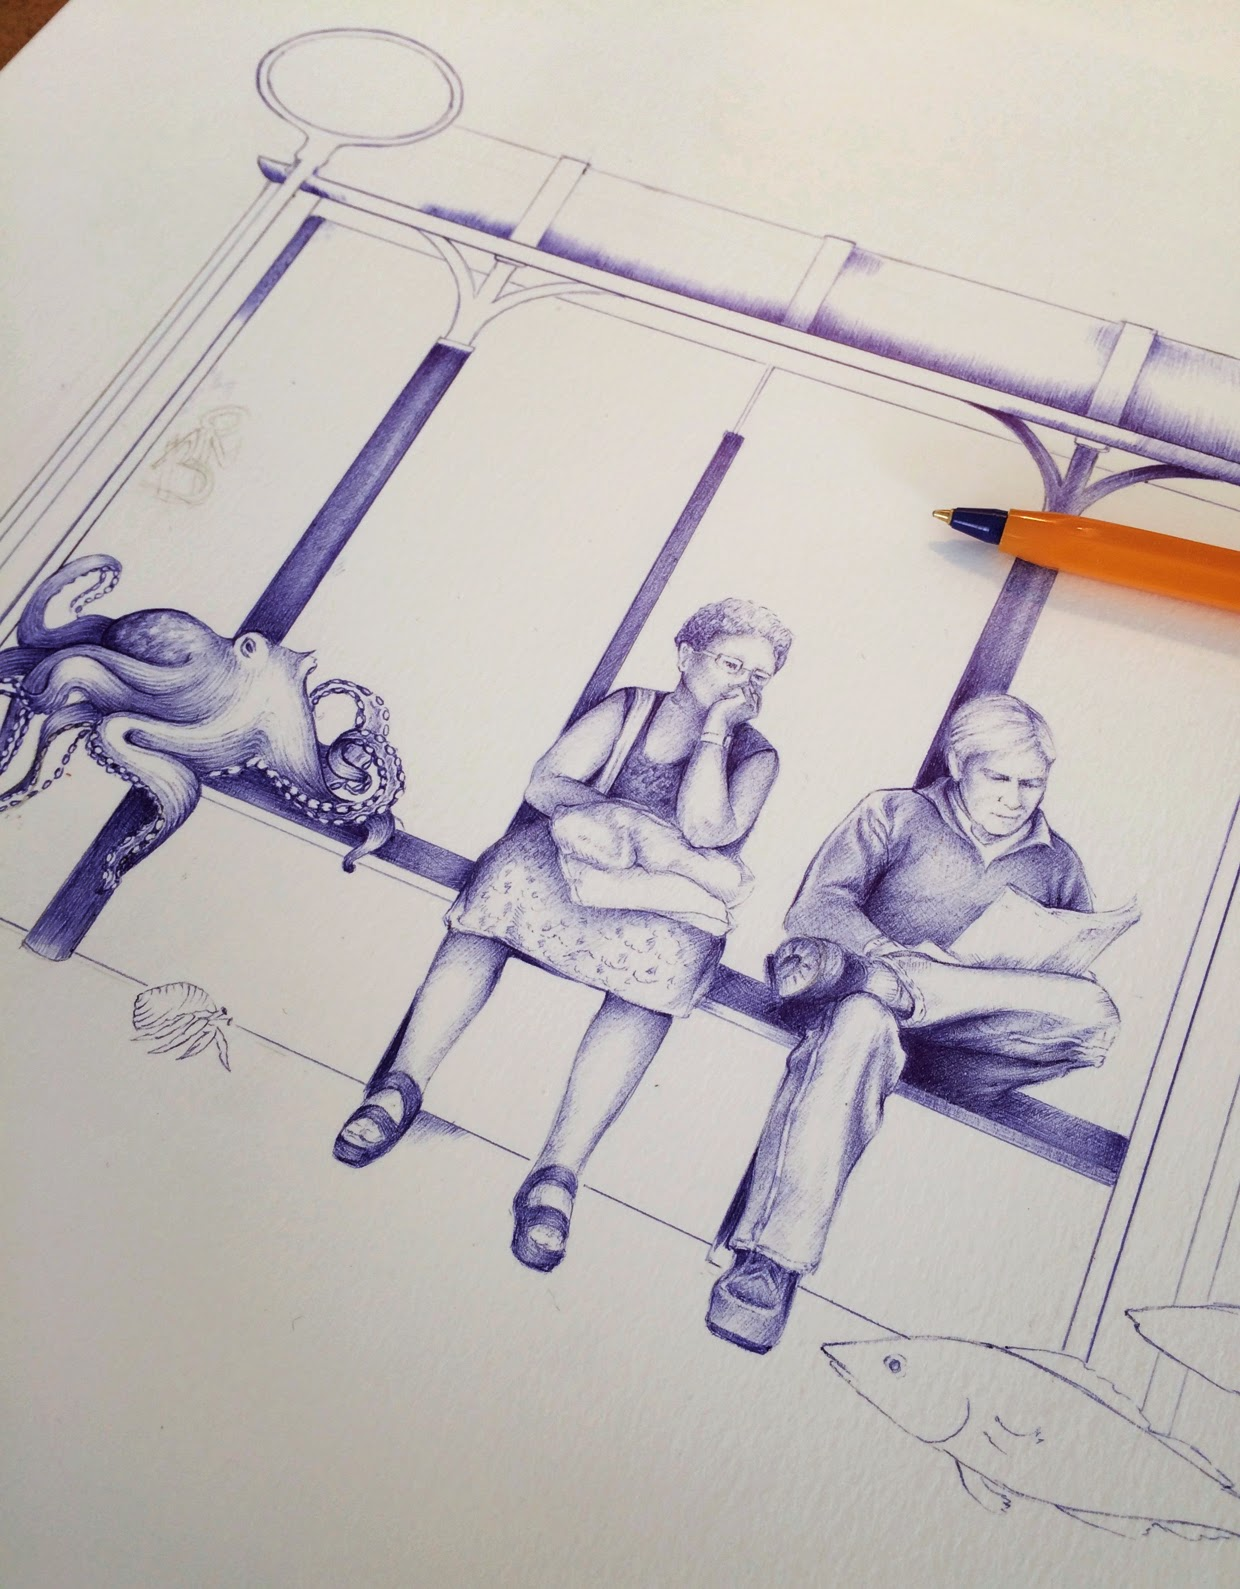 10-Waiting-for-Santa-Maria-Dani-Loureiro-Zero-Gravity-Ballpoint-Pen-Drawings-www-designstack-co